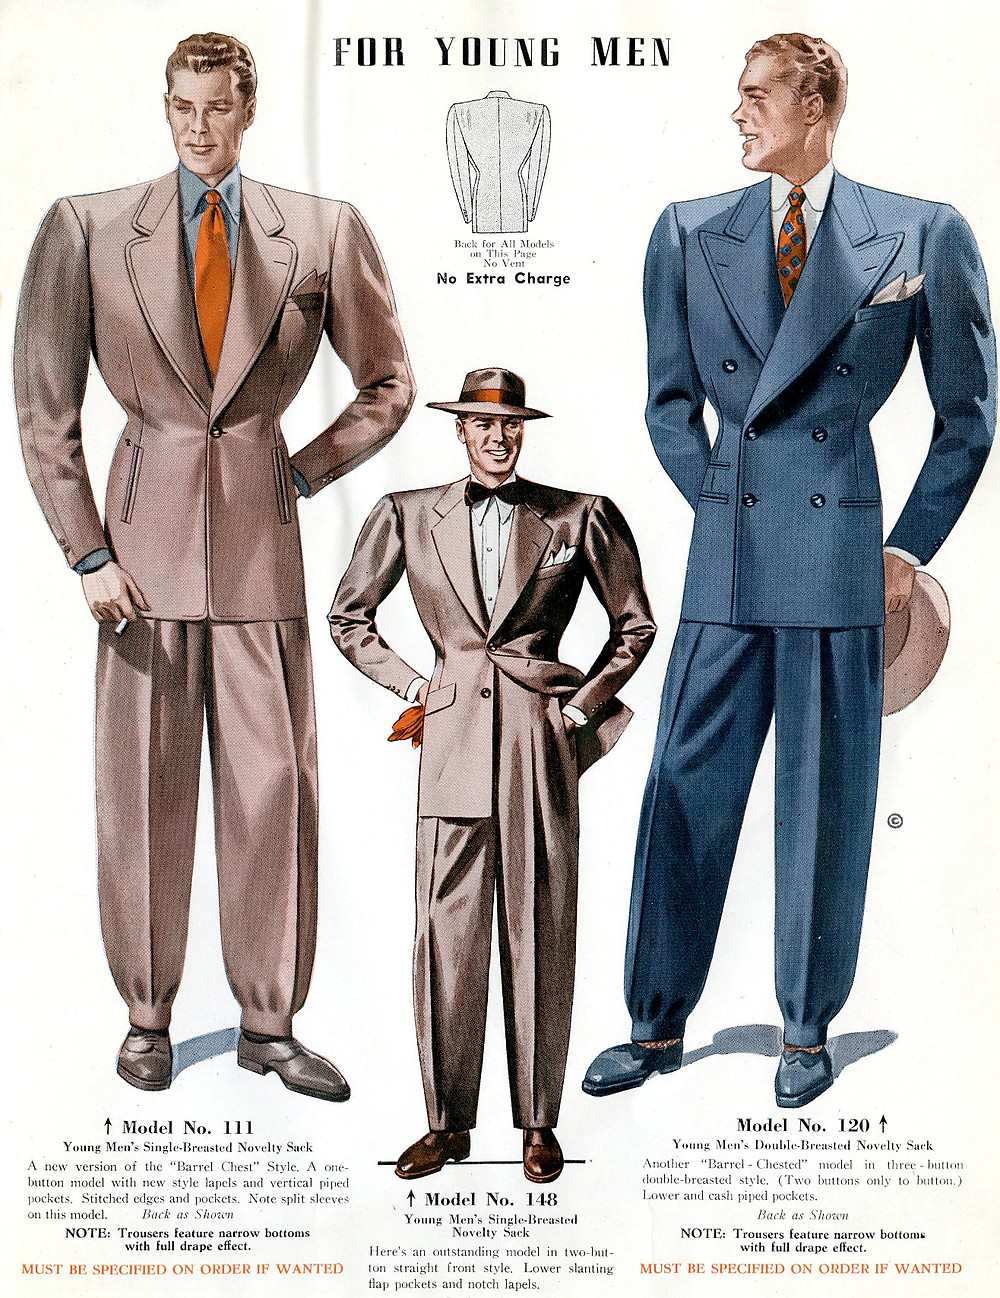 1940s fashion suits for young men